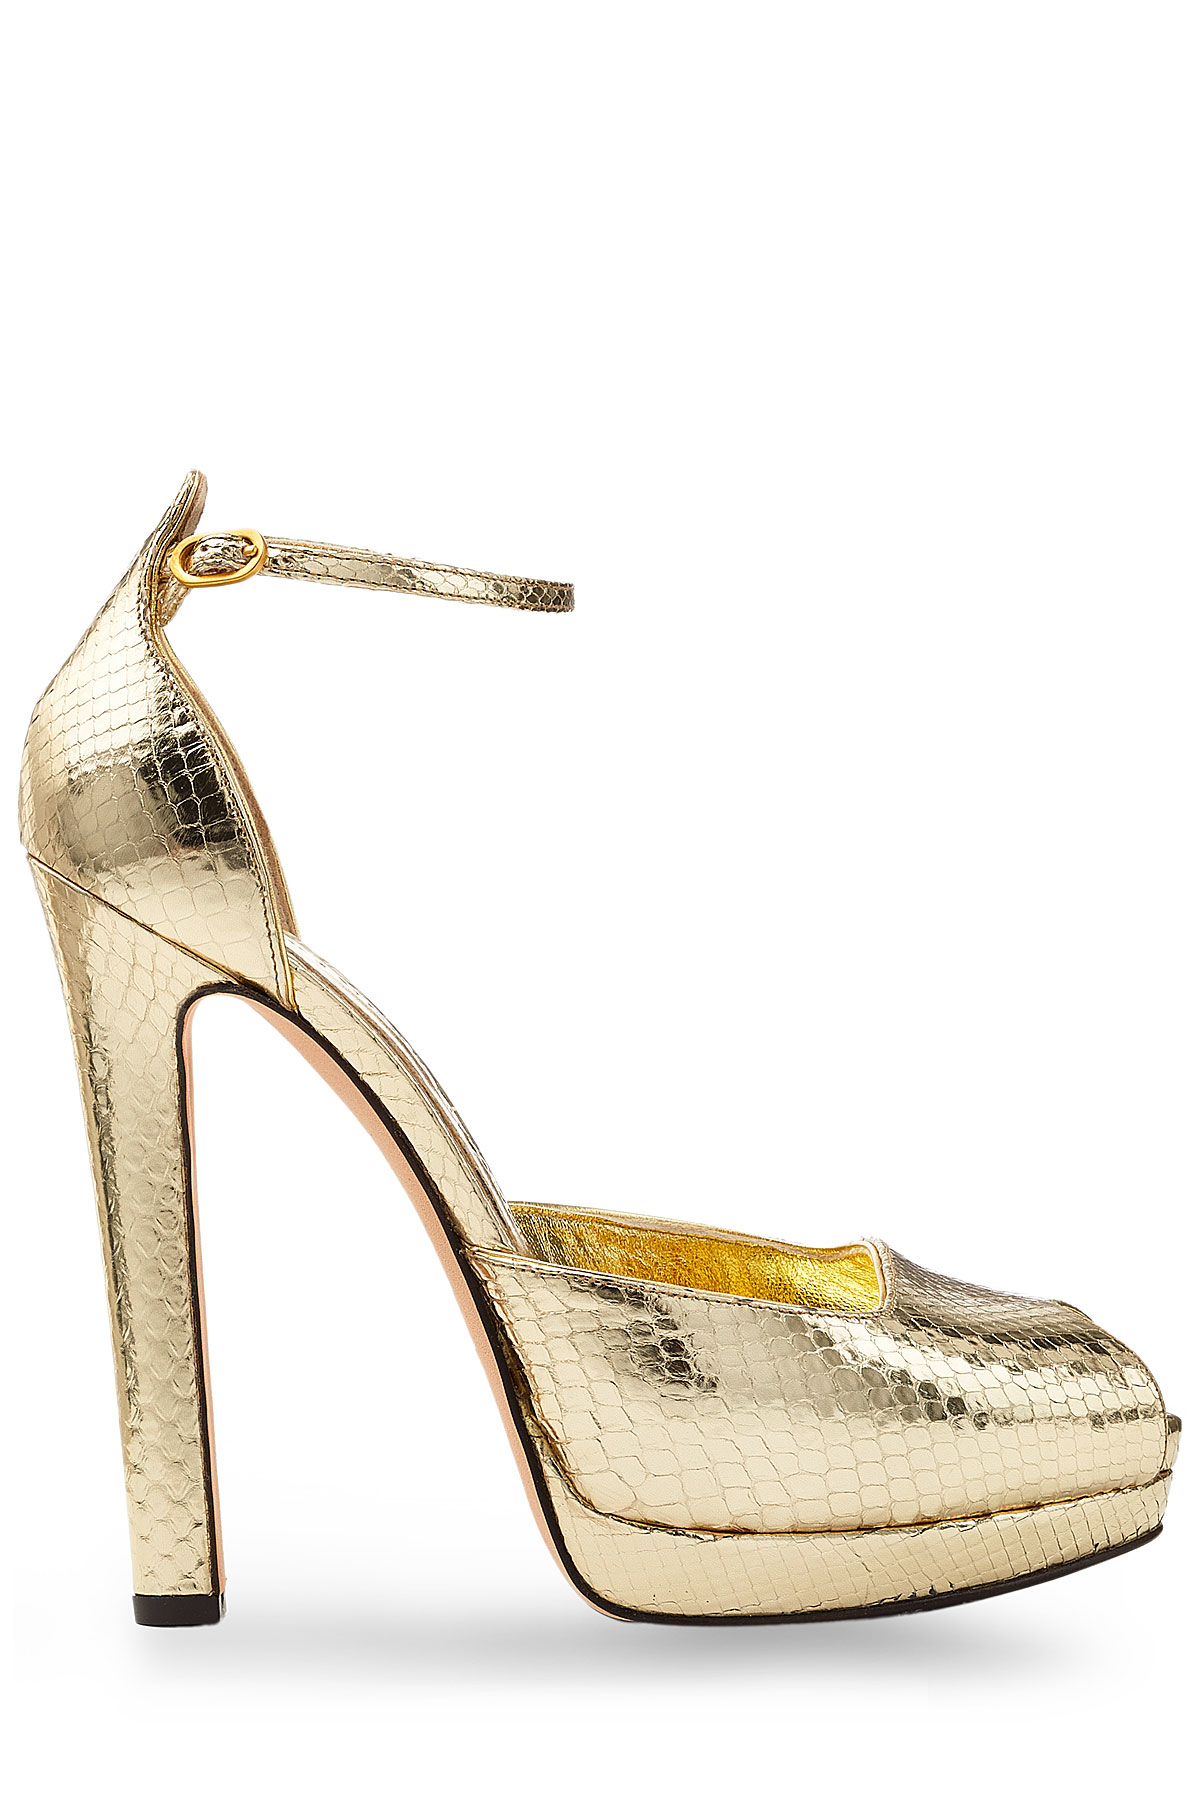 outlet wiki Alexander McQueen Metallic Cage Sandals nicekicks Jqqfhpm7